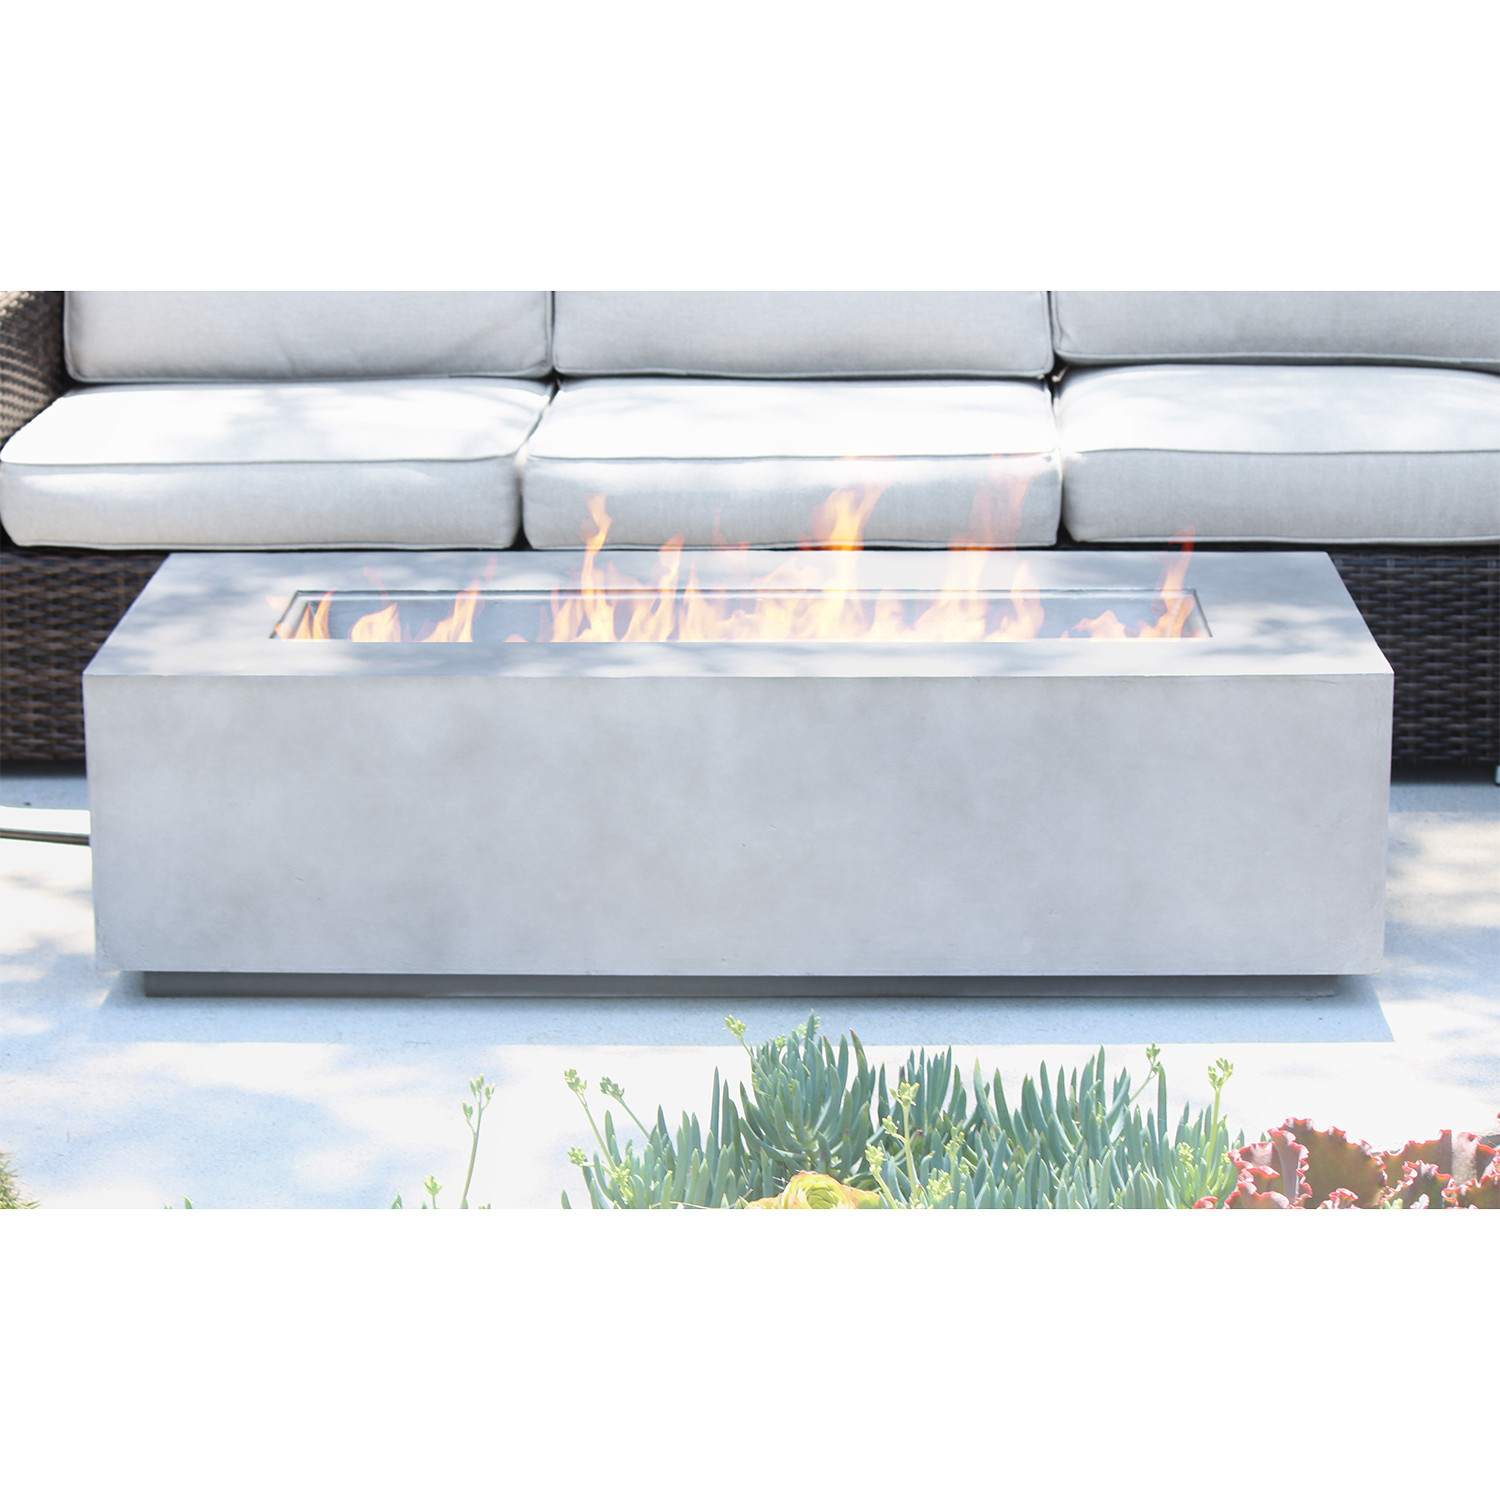 Coronado cast concrete fire pit table century modern for 12 inch high table